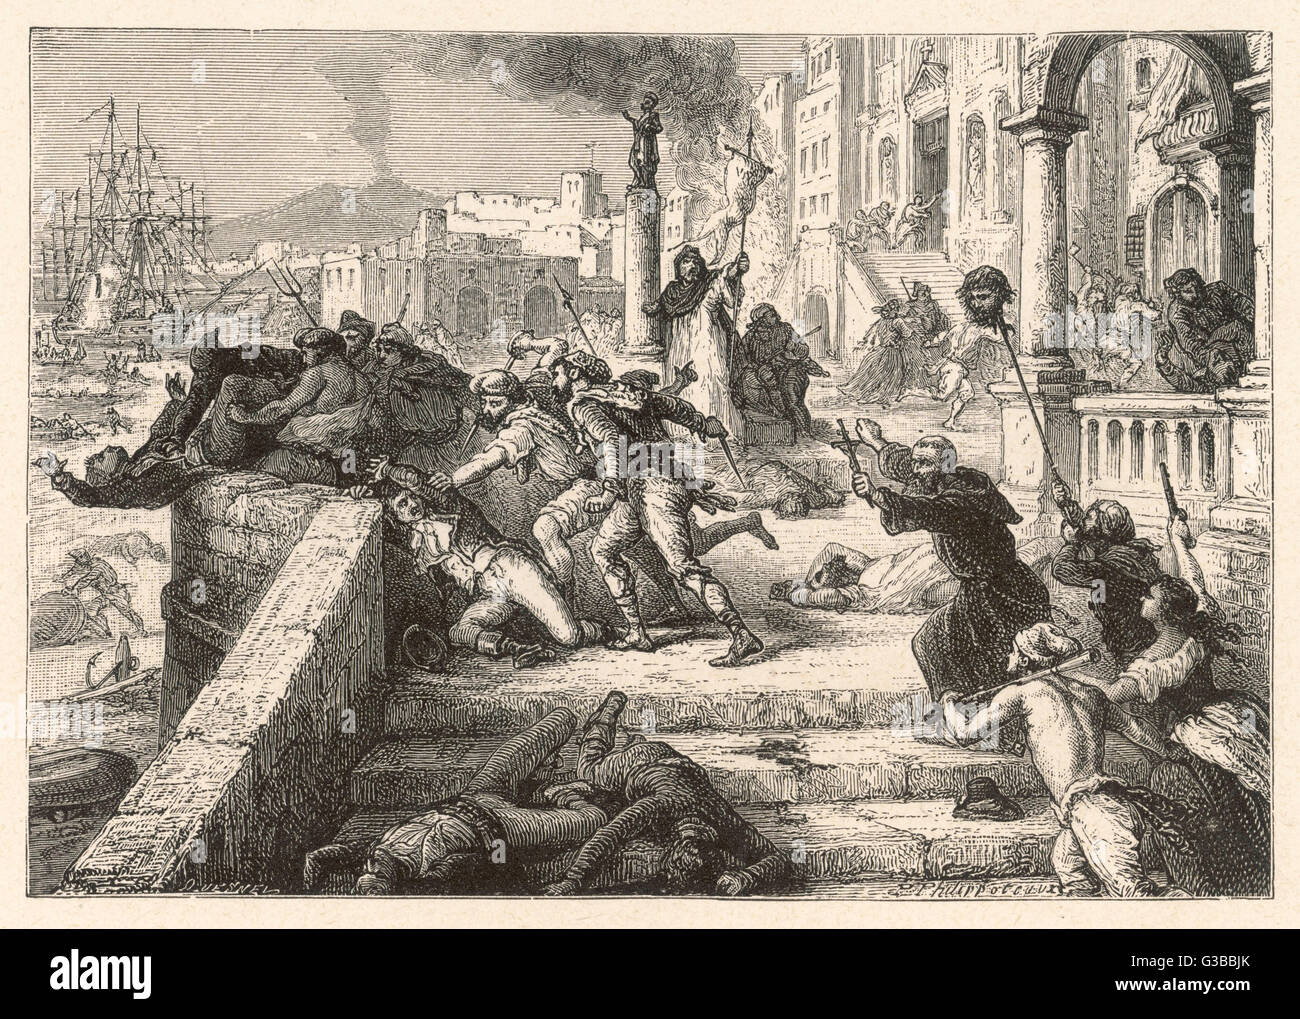 The populace of Naples rise up  against the French.        Date: 1798 - Stock Image